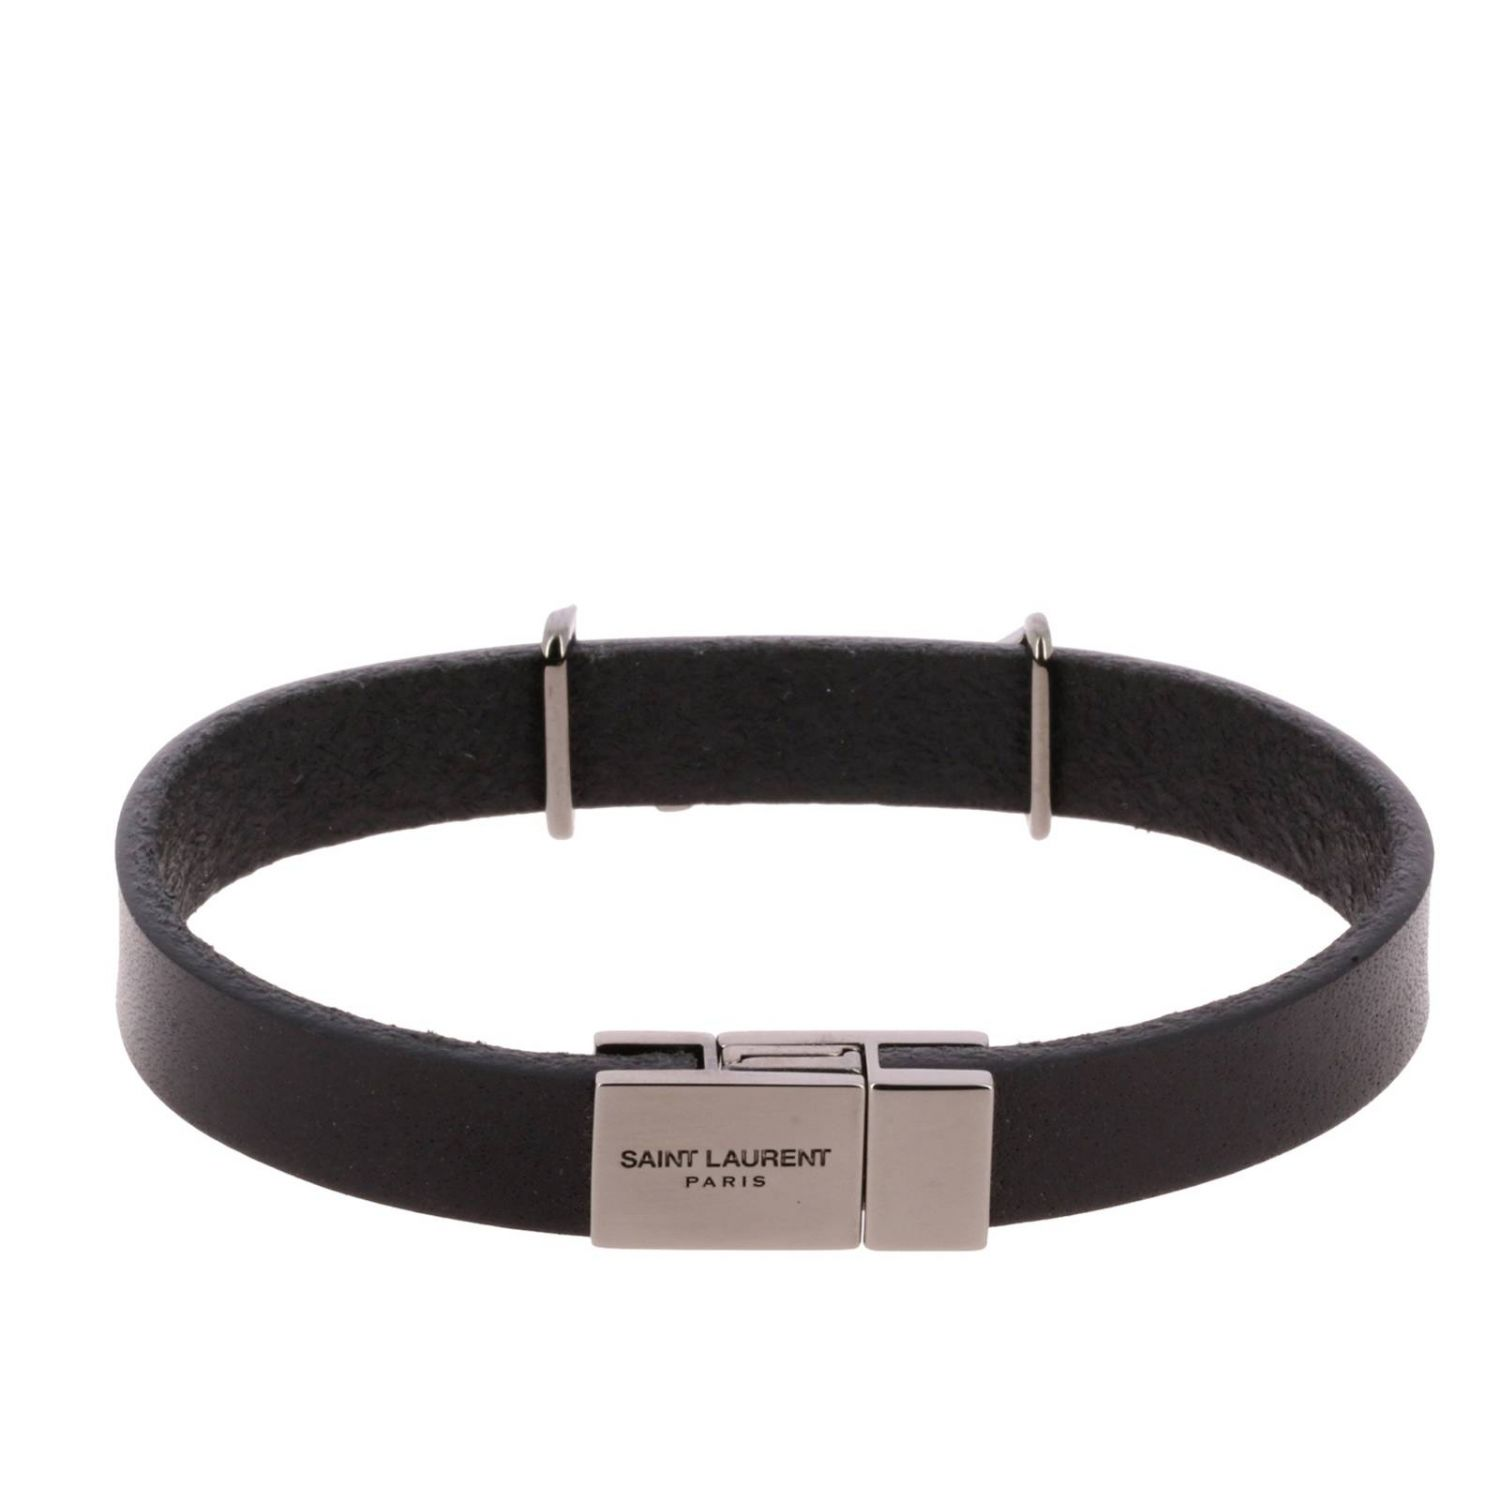 Bijoux Saint Laurent: Bijoux homme Saint Laurent noir 2